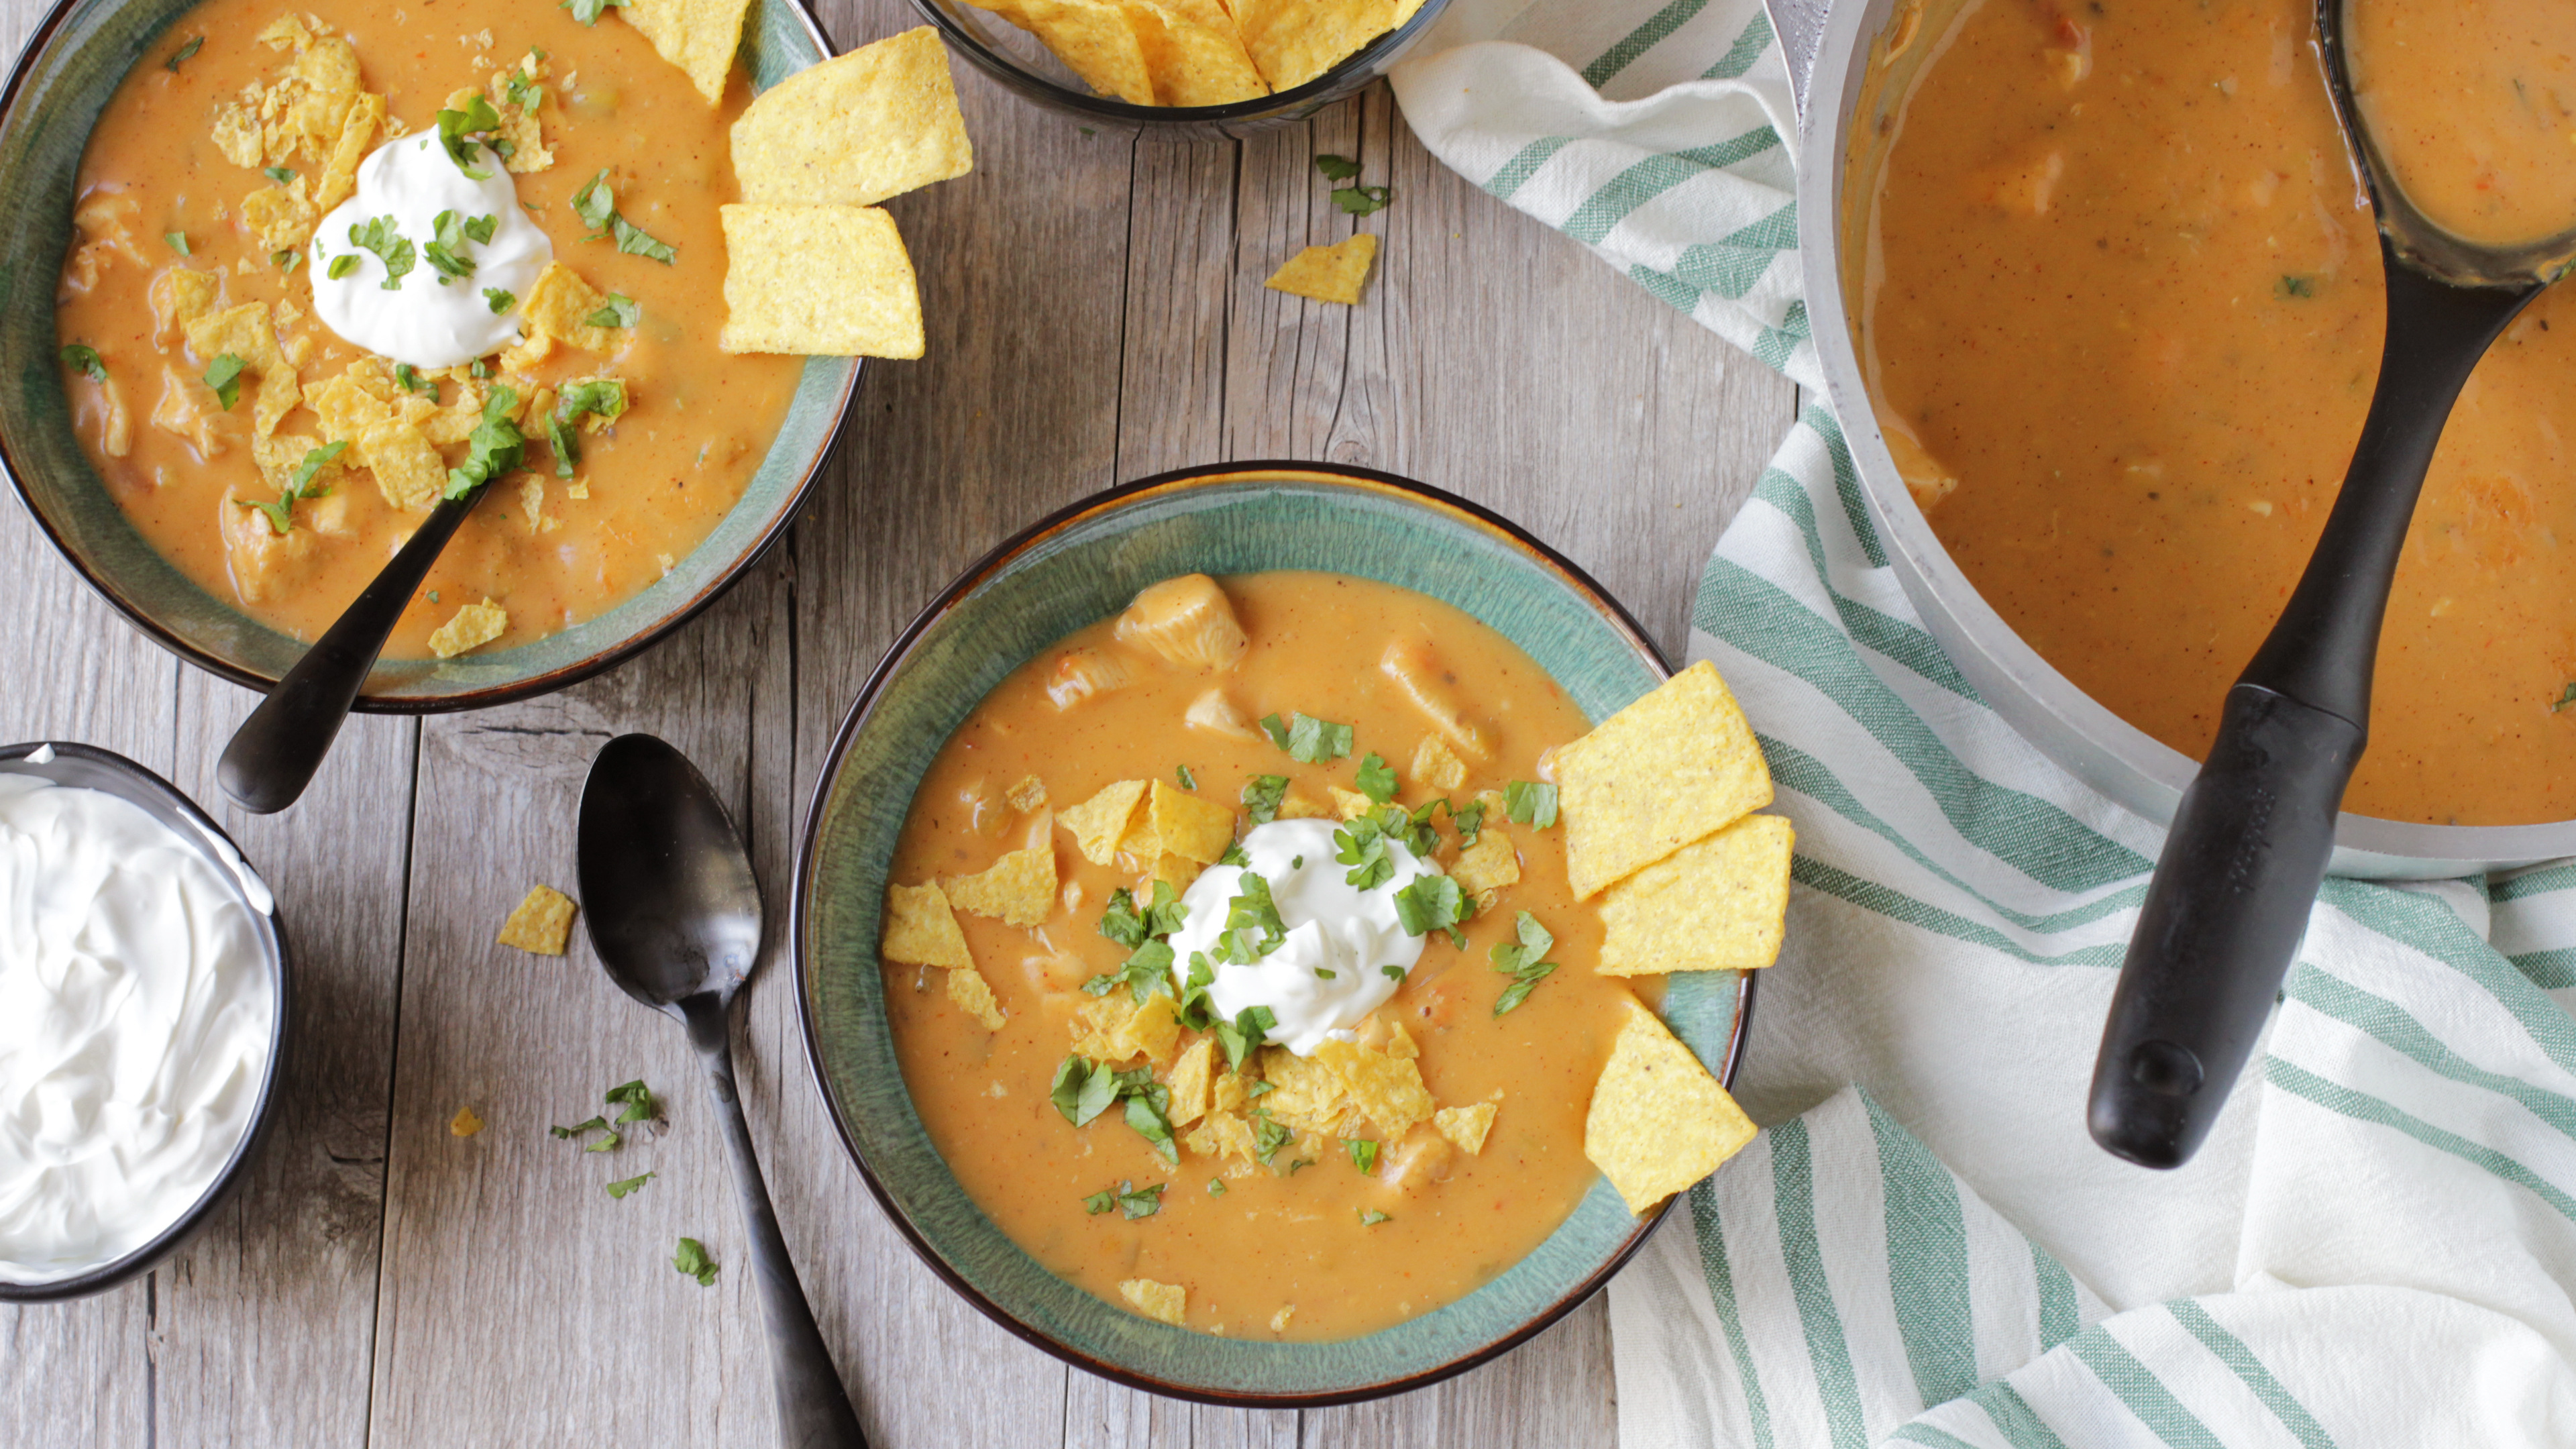 Discussion on this topic: Genius: This Healthy Soup Recipe Requires Next , genius-this-healthy-soup-recipe-requires-next/